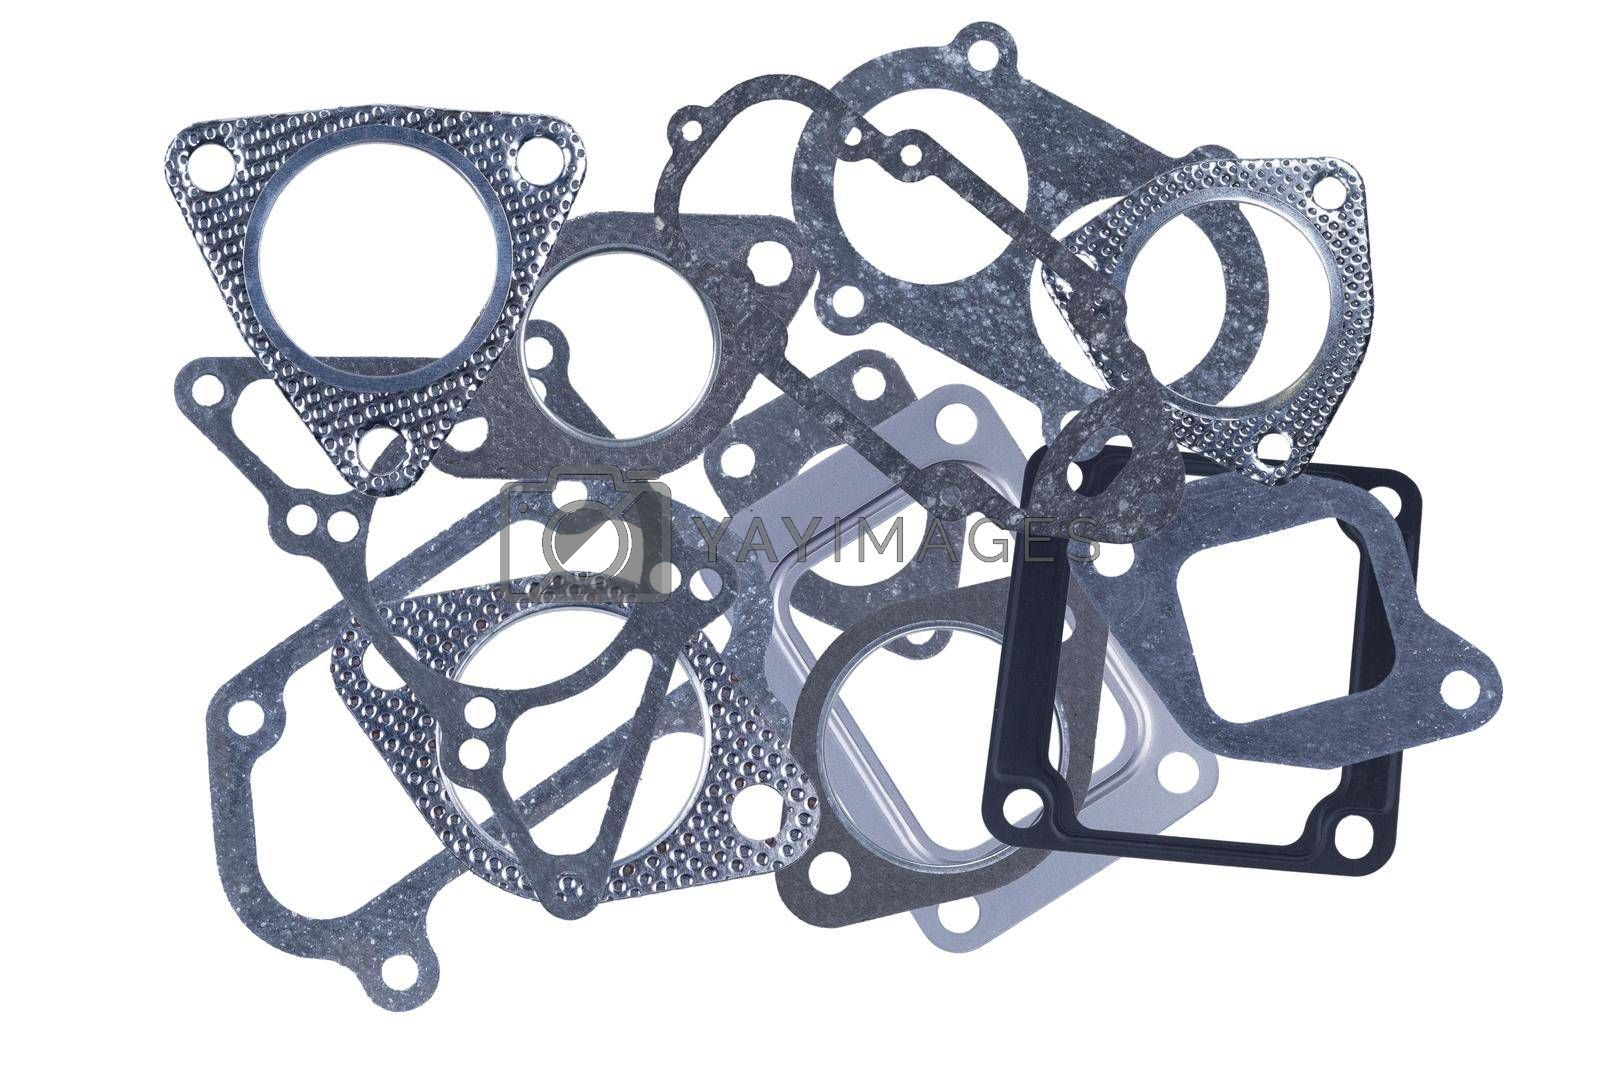 Set of several different metal and paronite engine gaskets, isolated on a white background